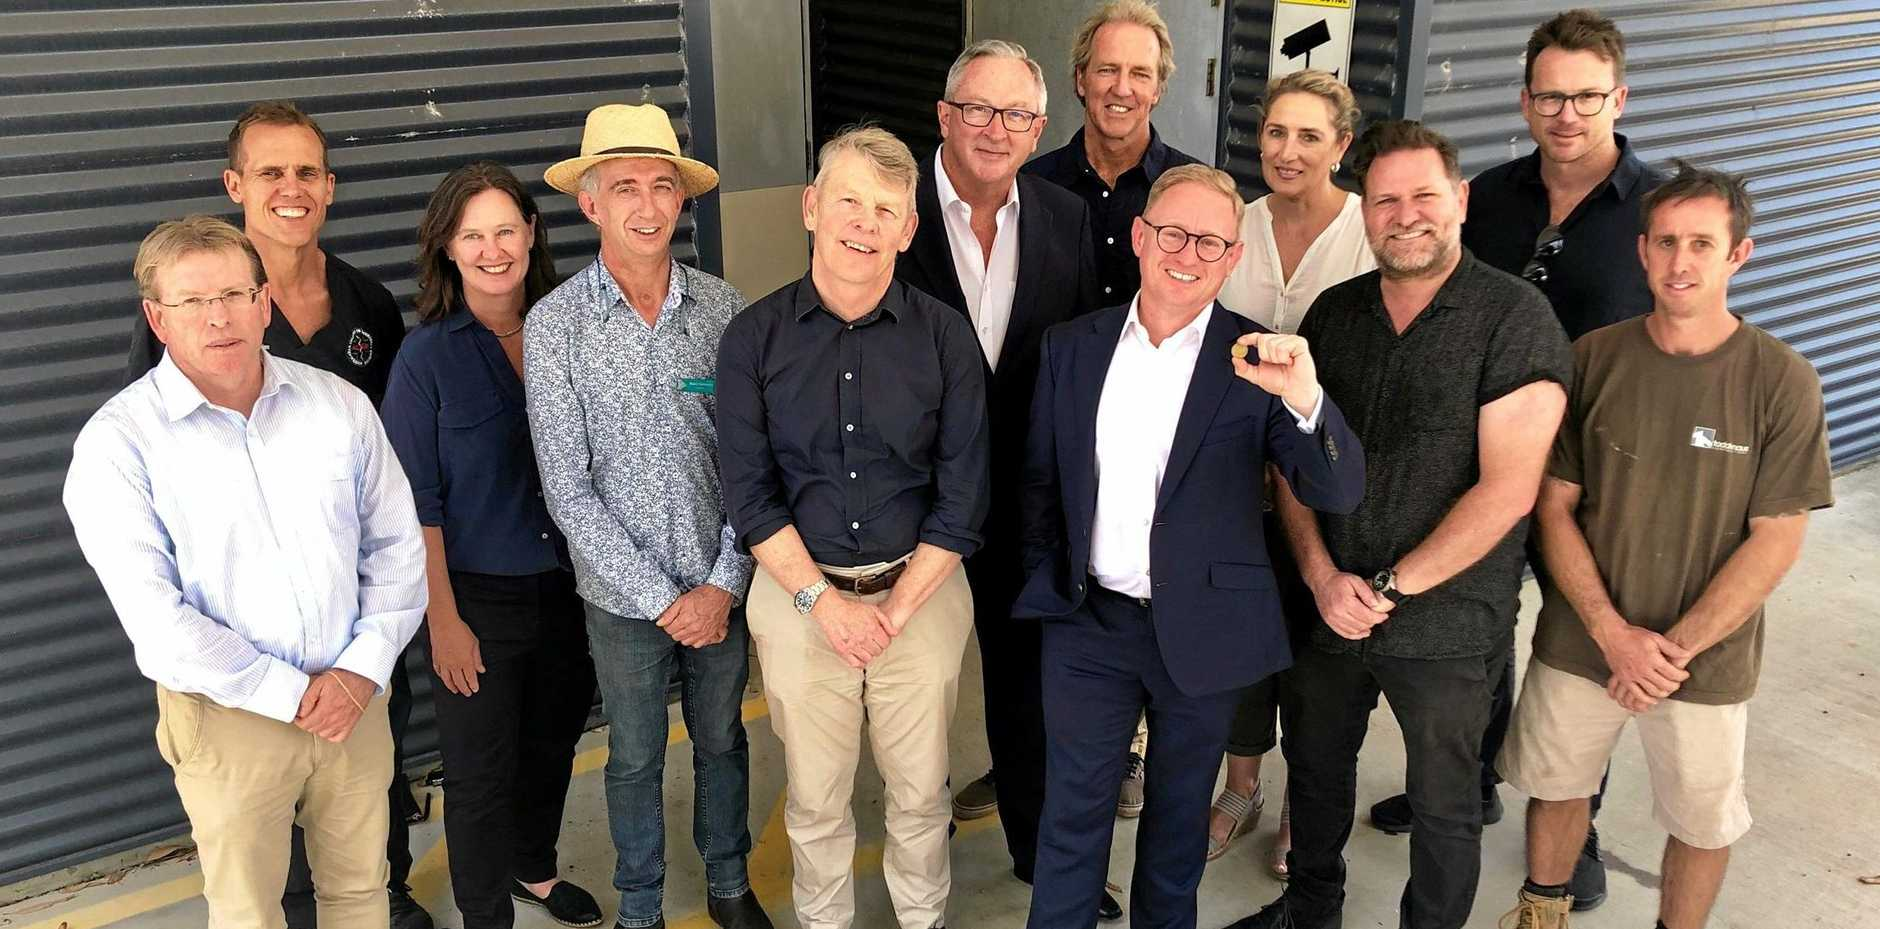 DEAL: Health Minister Brad Hazzard with members of the Steering Committee for the Transfer of Old Byron Bay Hospital to Community Hands.